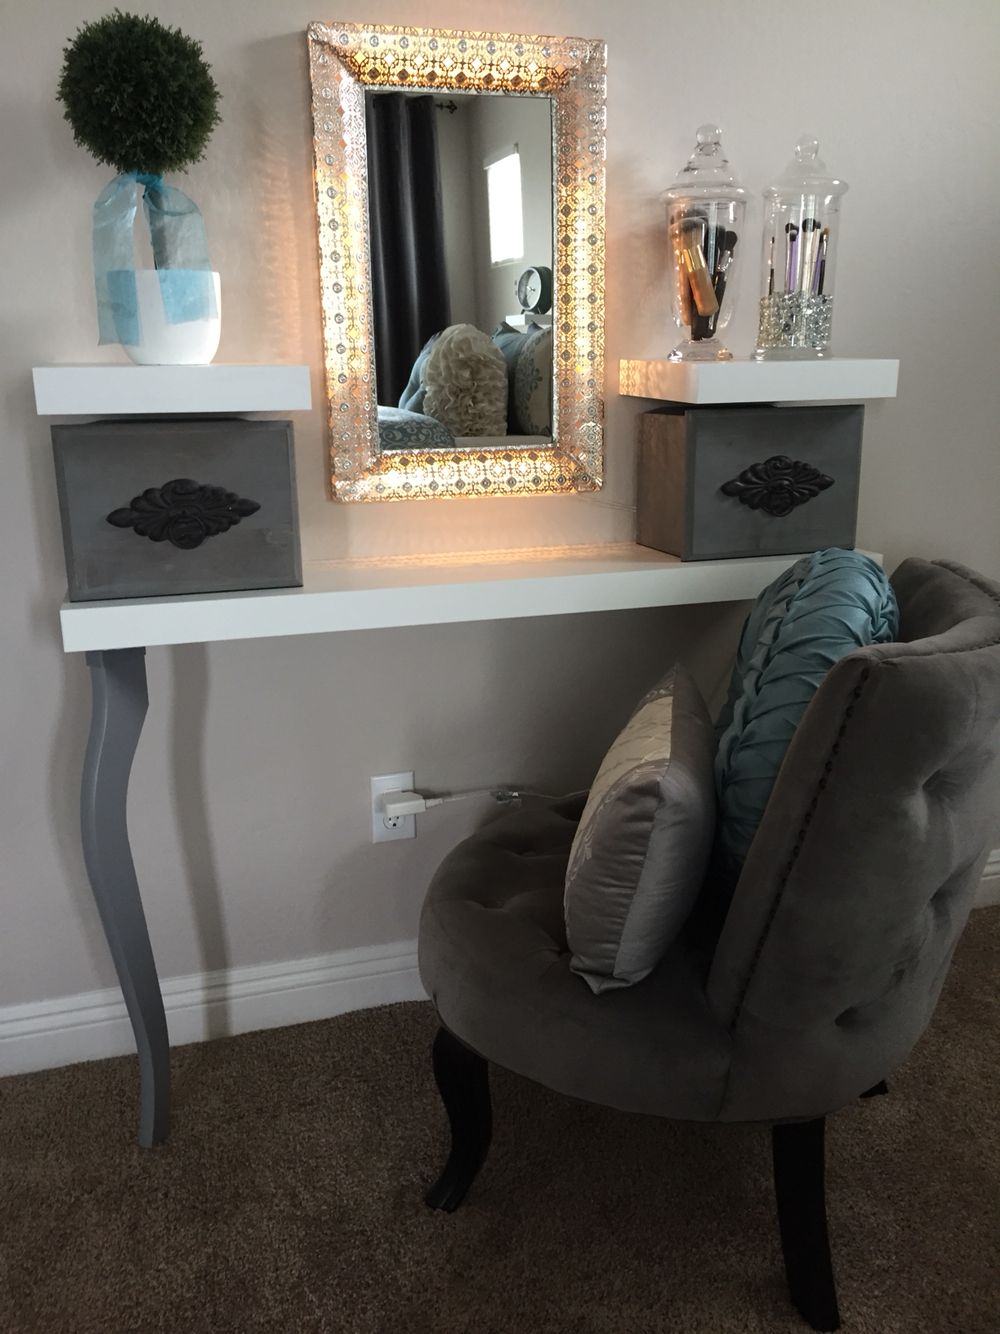 Superb My Homemade Vanity. I Pieced Together Items To Make It And Was Able To Do